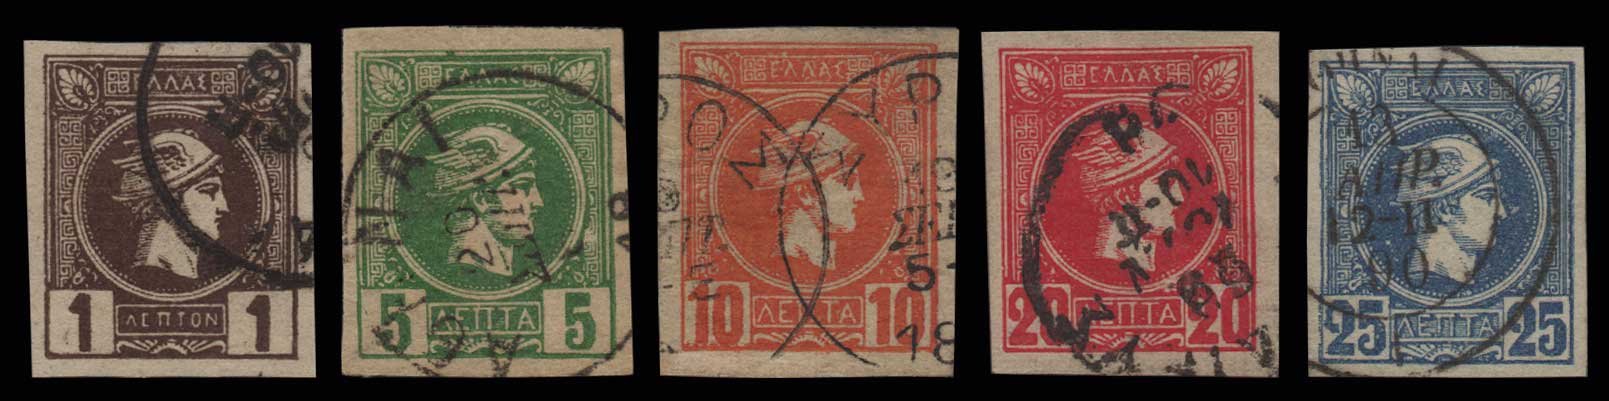 Lot 404 - -  SMALL HERMES HEAD ATHENSPRINTING - 1st PERIOD -  Athens Auctions Public Auction 88 General Stamp Sale